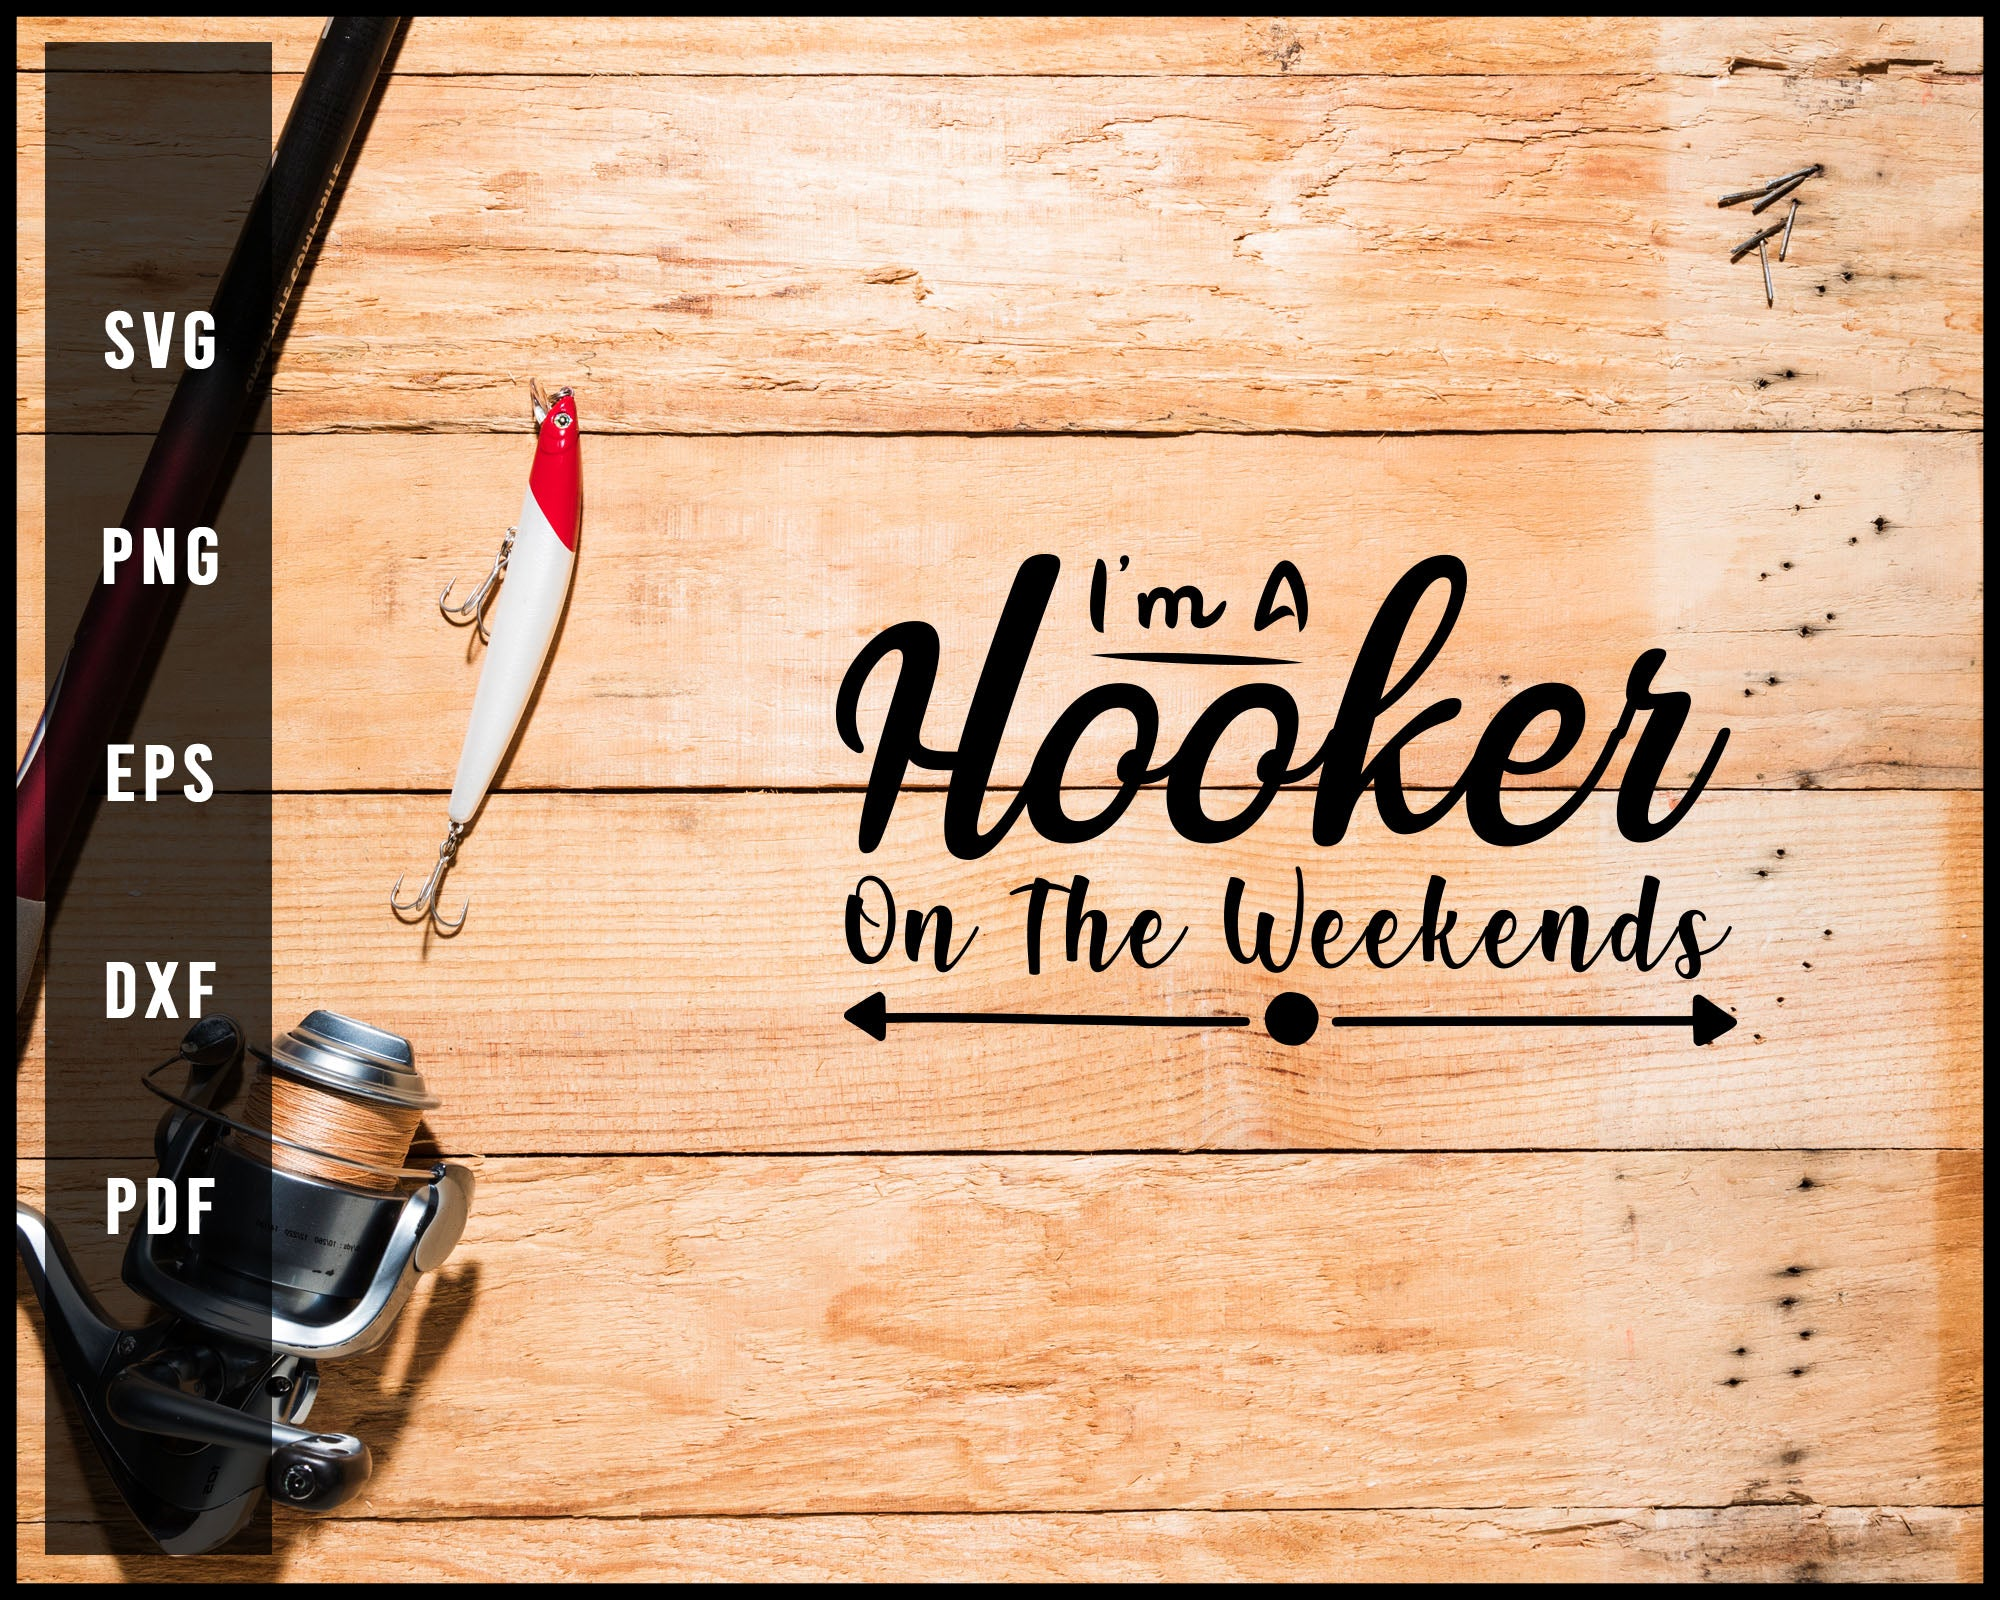 I'm A Hooker On The Weekends svg png Silhouette Designs For Cricut And Printable Files